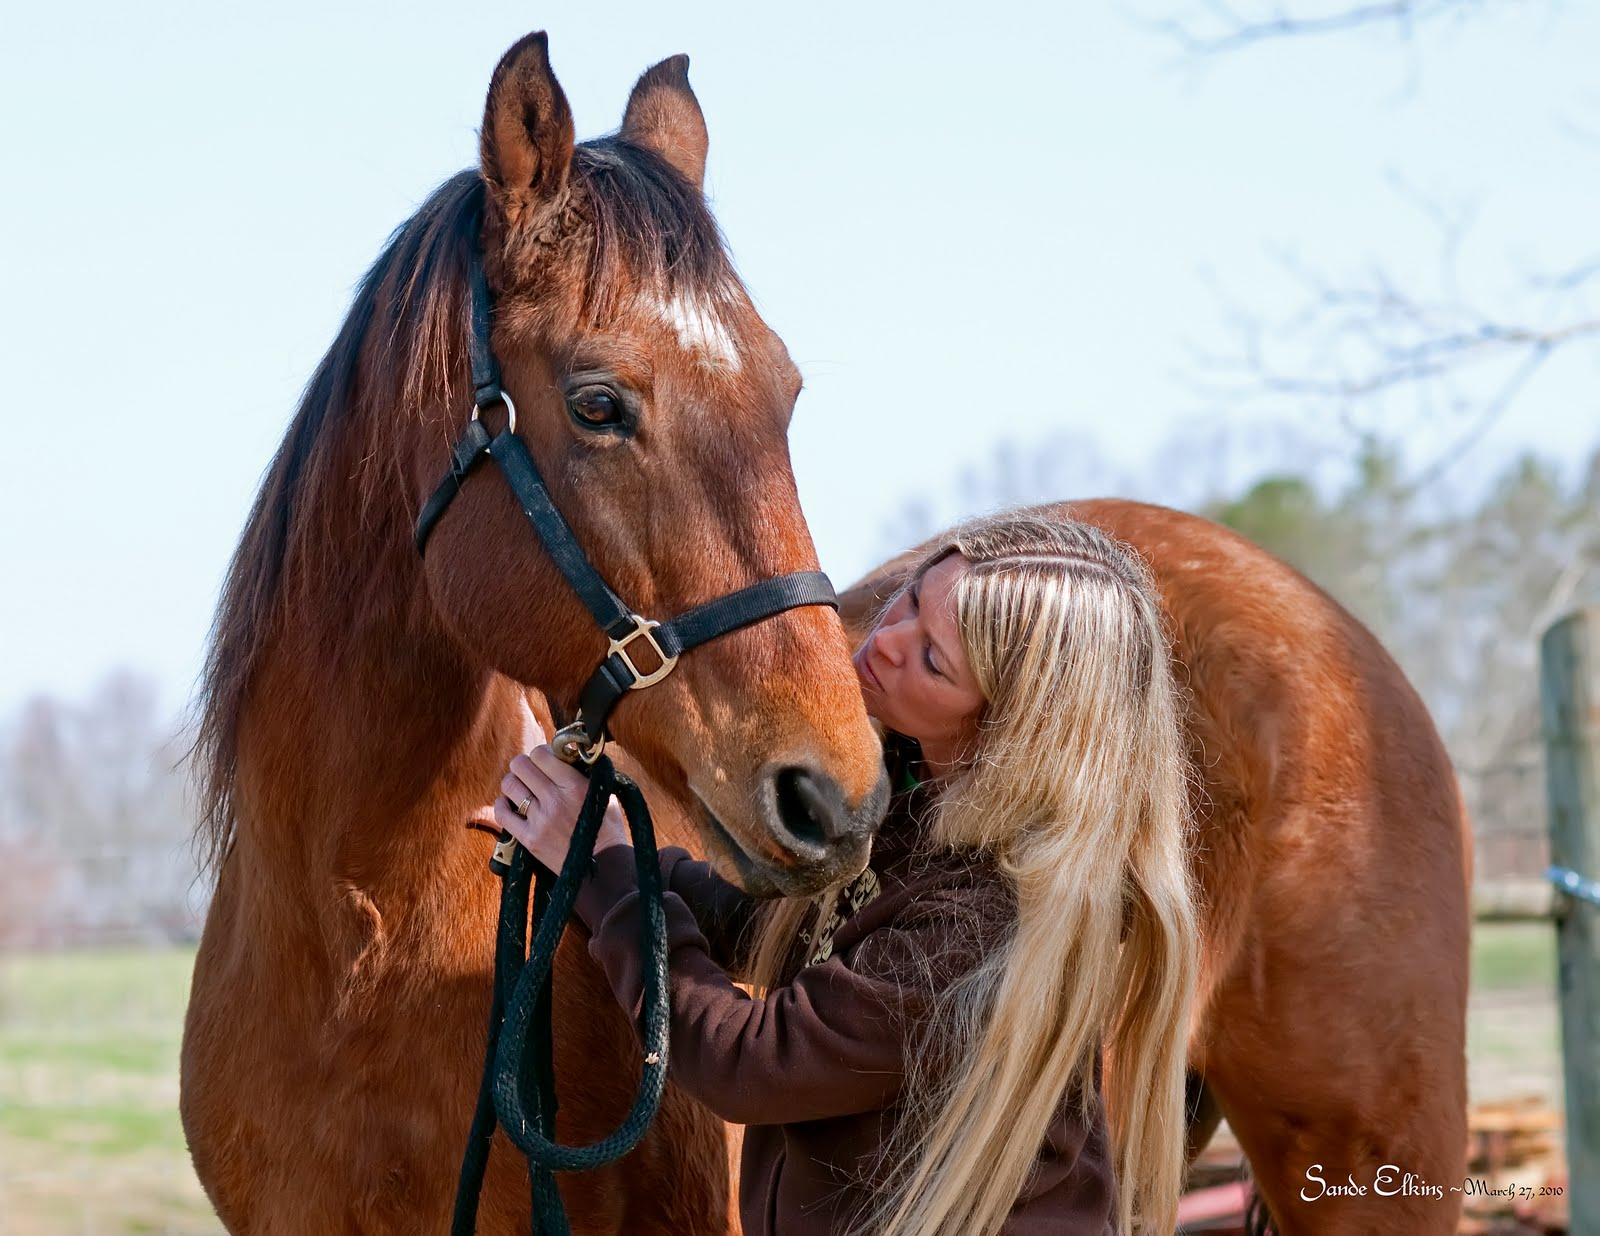 equine protozoal myeloencephalitis epm essay Learn to recognize the symptoms of epm equine protozoal myeloencephalitis (epm) is a master of disguise this serious disease, which attacks the horse's central nervous system, can be difficult to diagnose because its signs often.